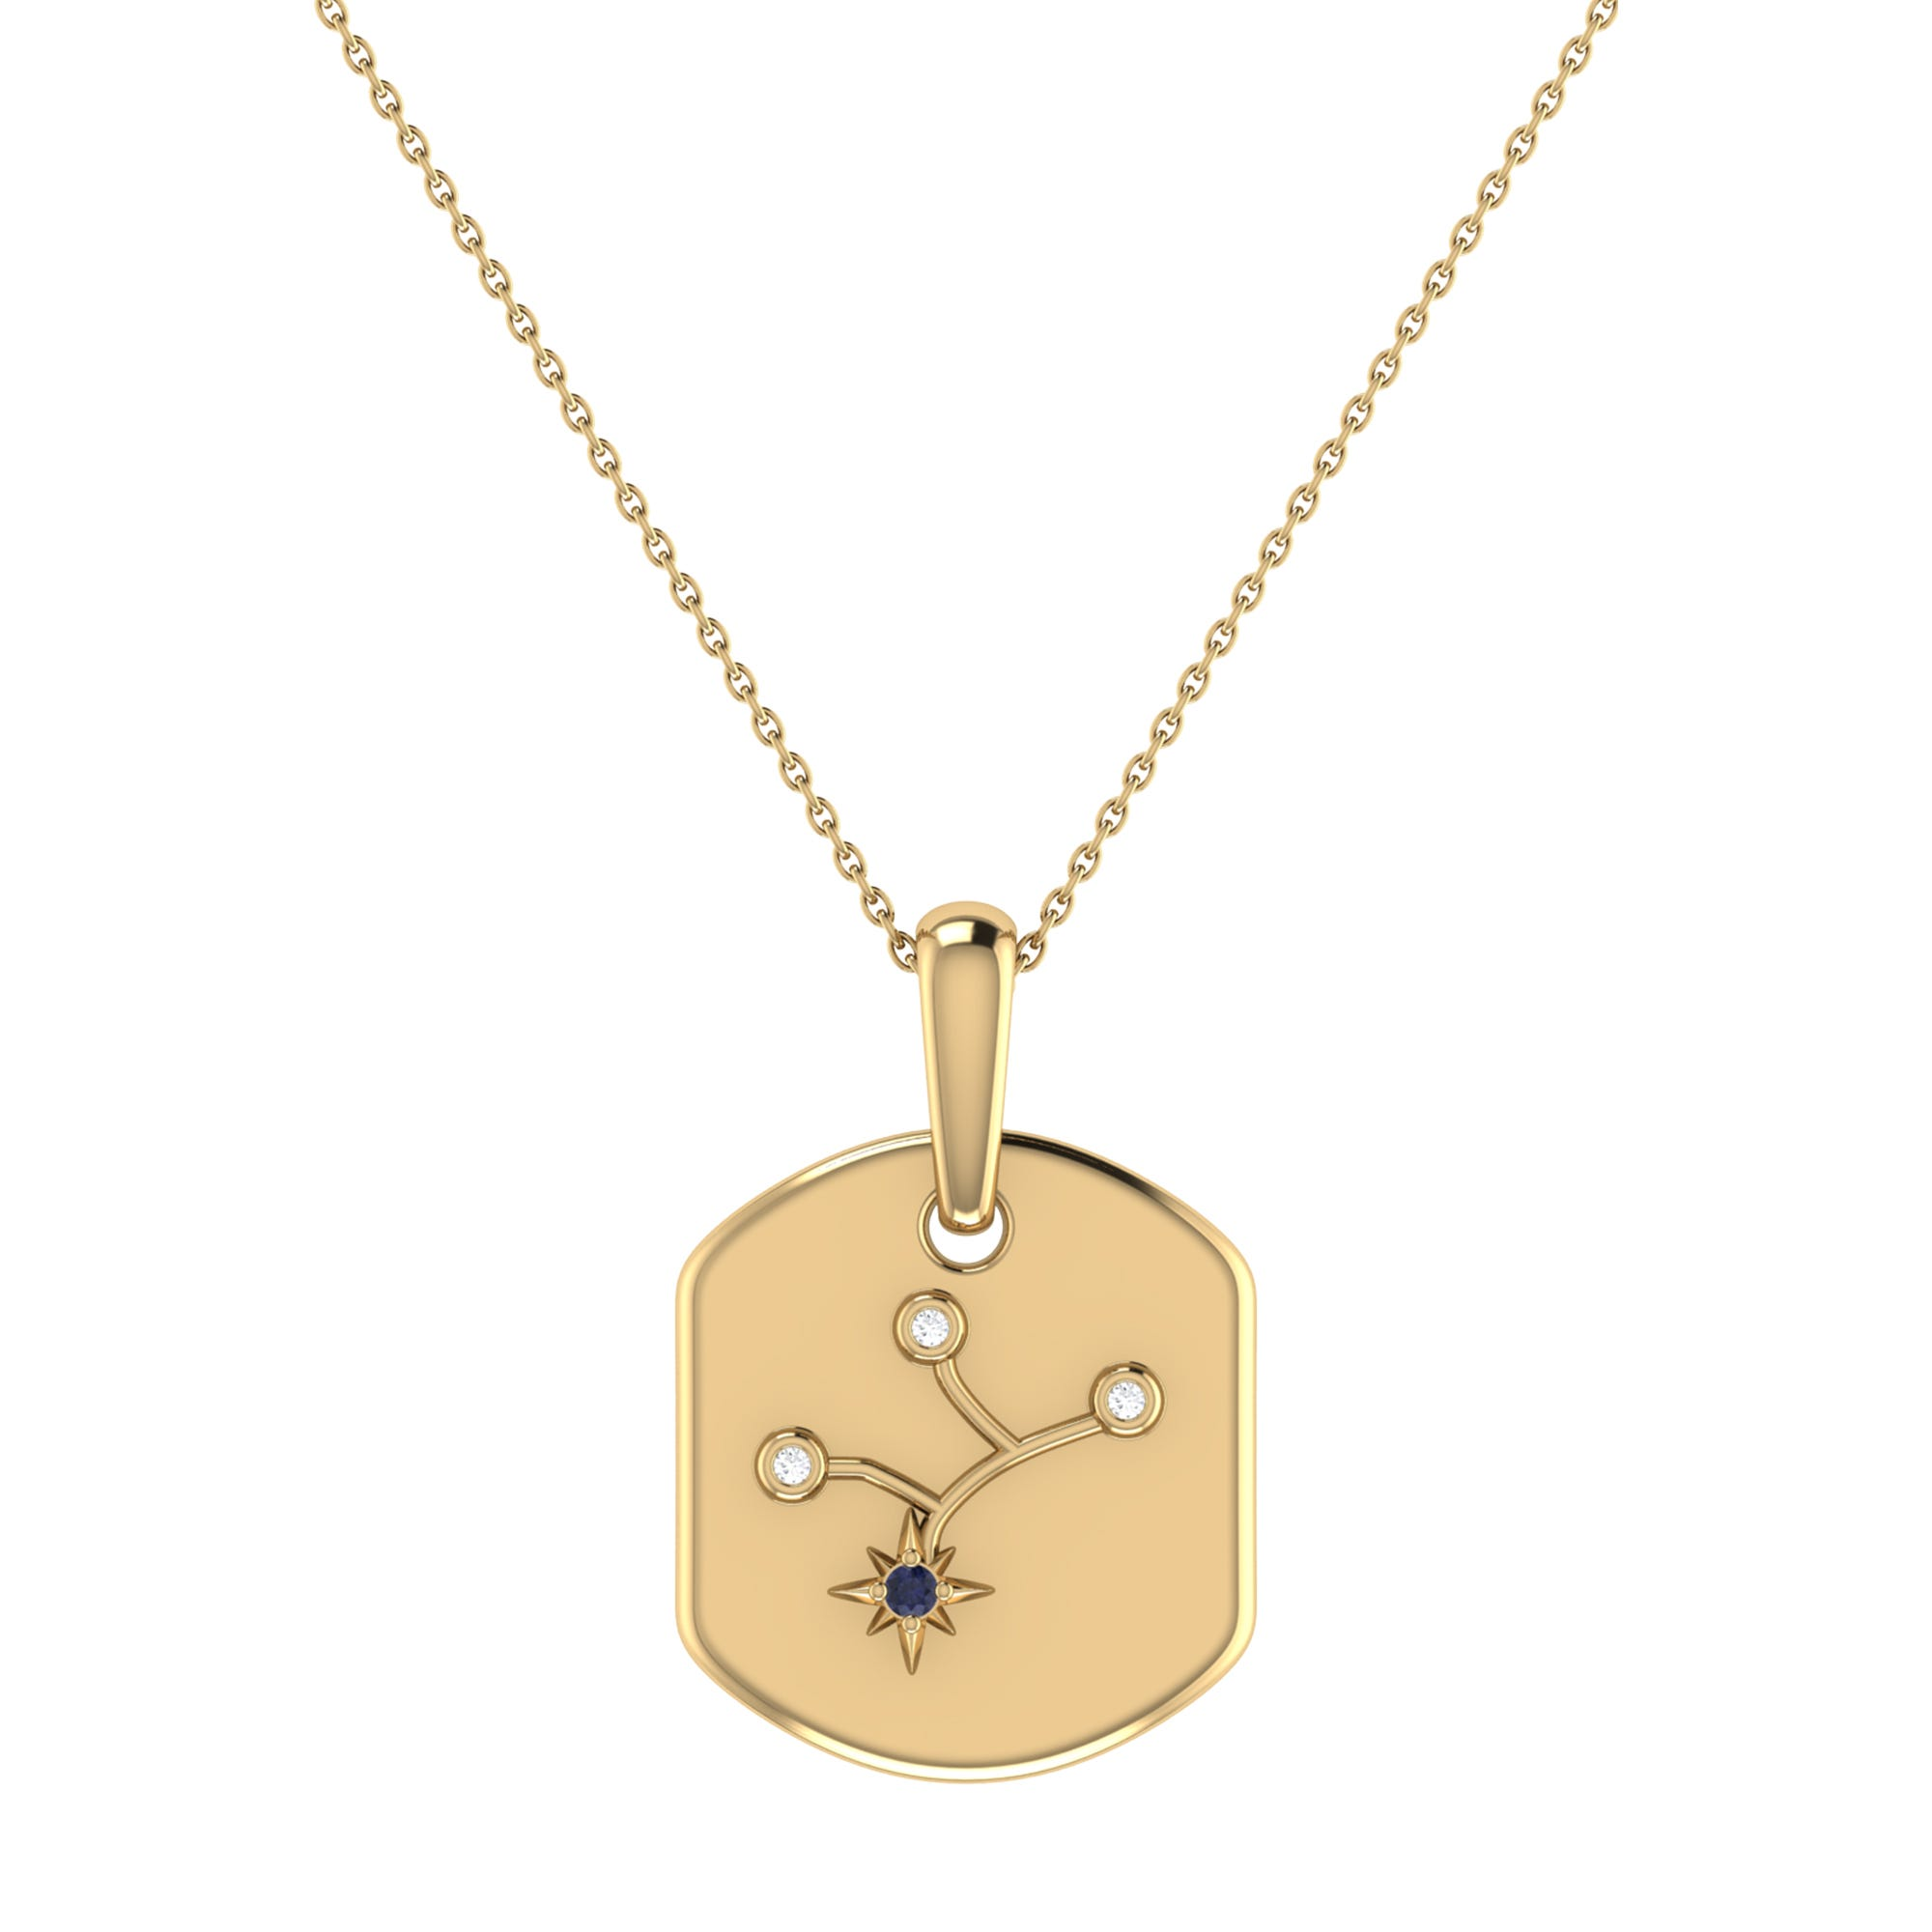 Diamond and Blue Sapphire Virgo Constellation Tag Necklace in 14k Yellow Gold Plated Sterling Silver